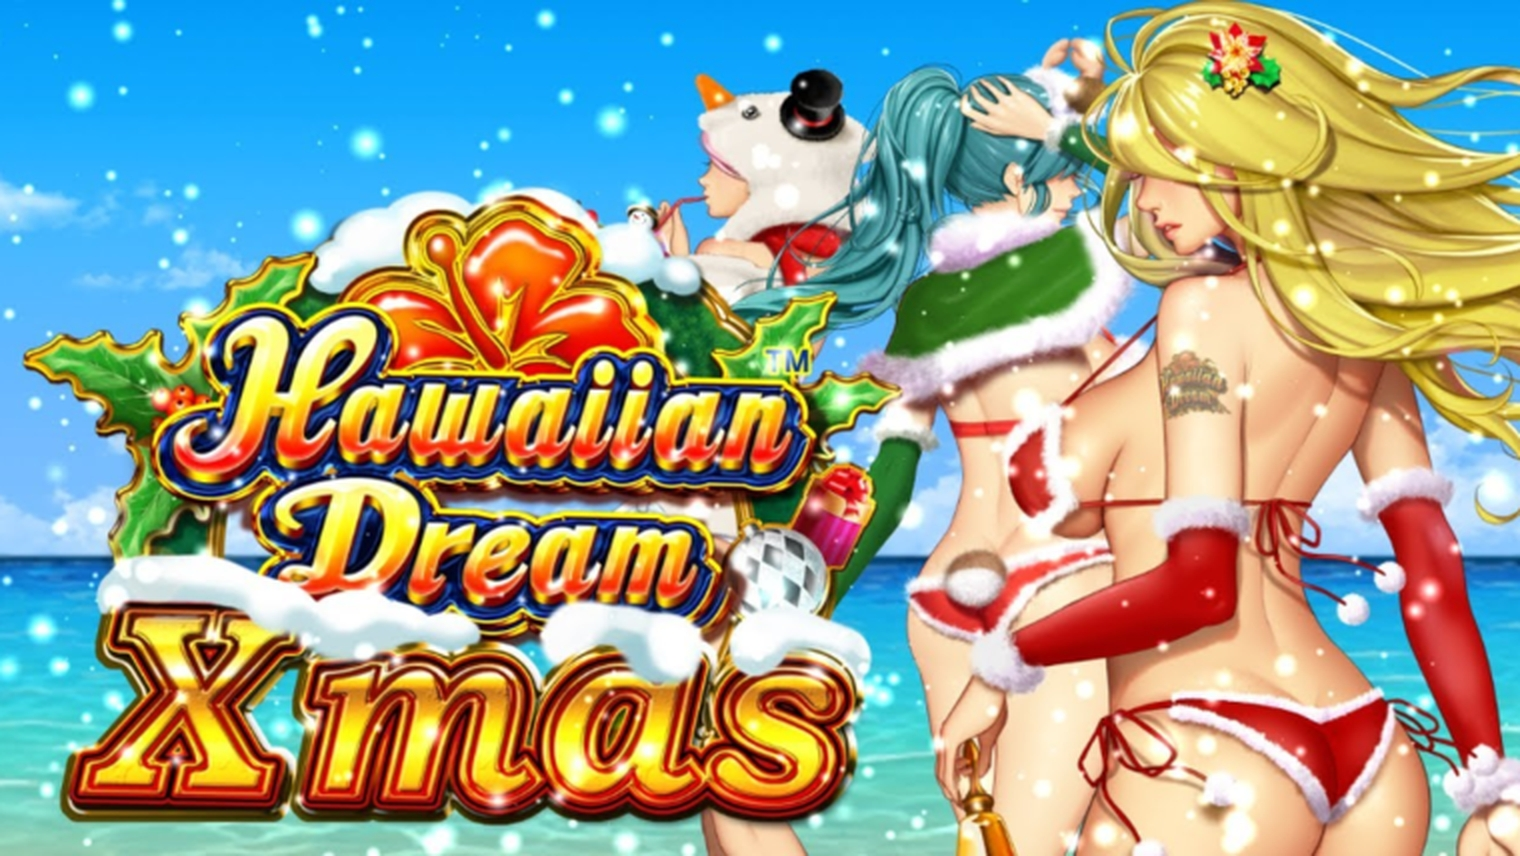 The Hawaiian Dream Xmas Online Slot Demo Game by JTG